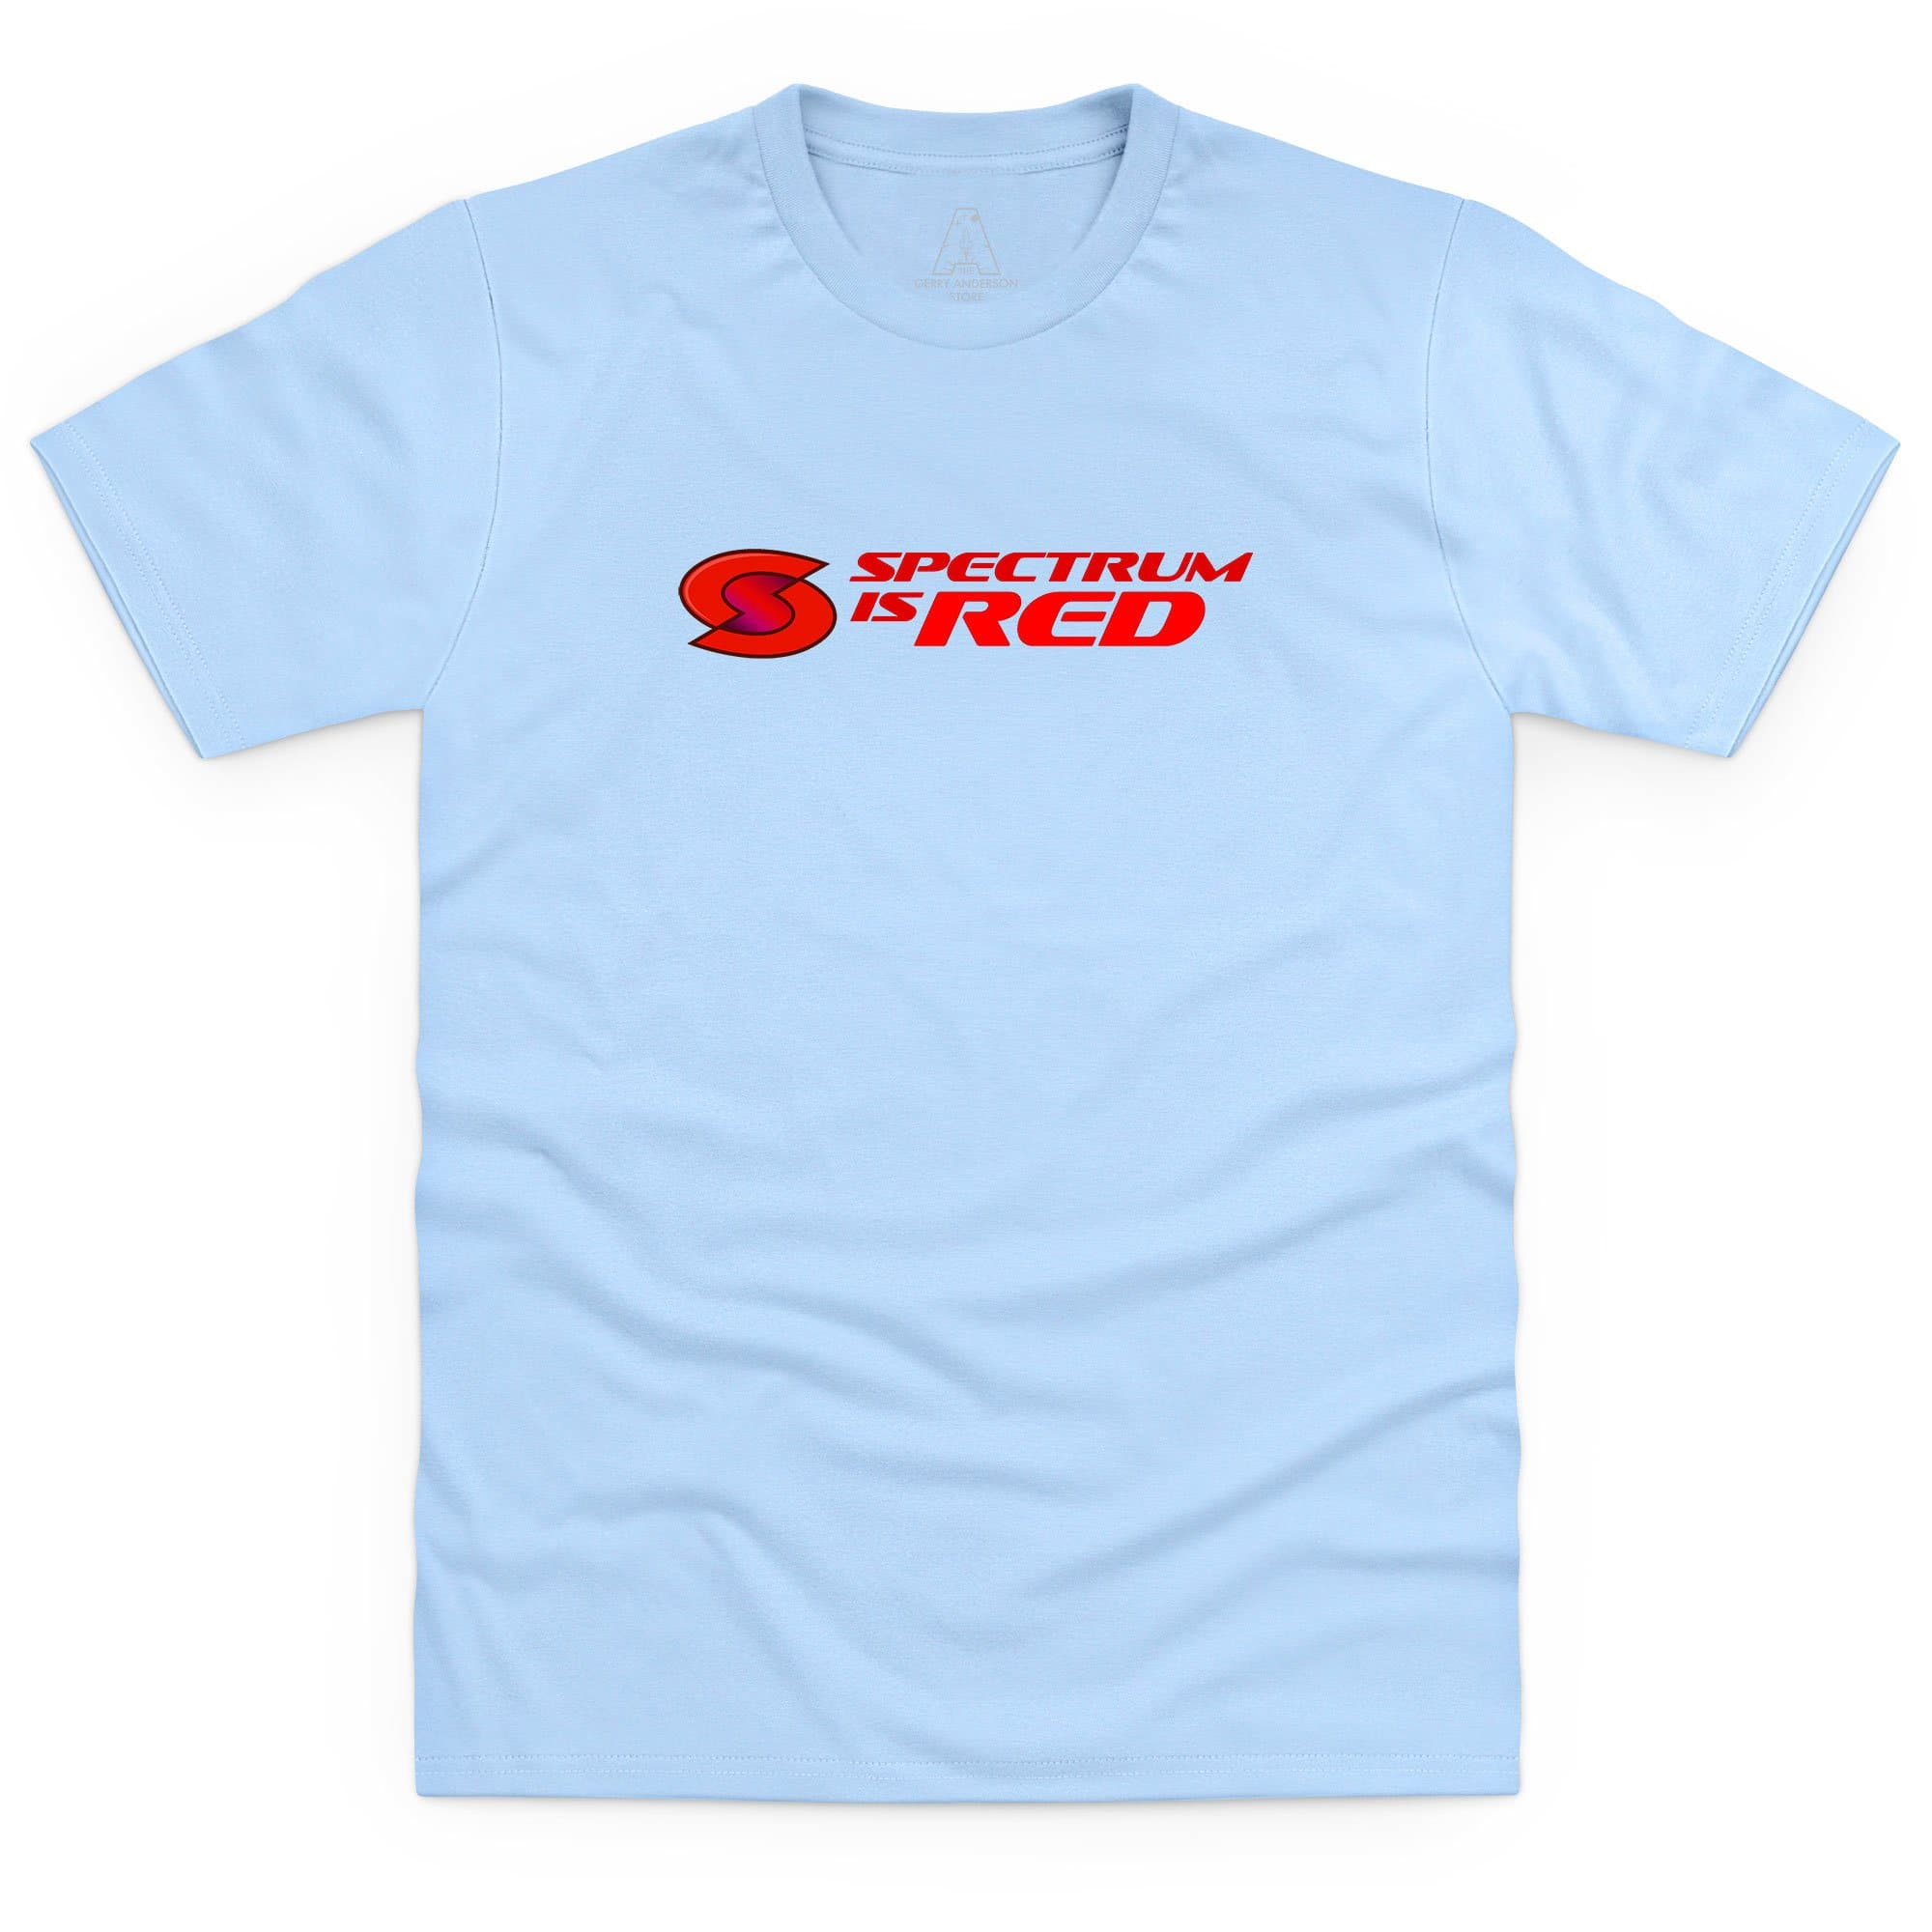 Spectrum Is Red Men's T-Shirt [Official & Exclusive] - The Gerry Anderson Store